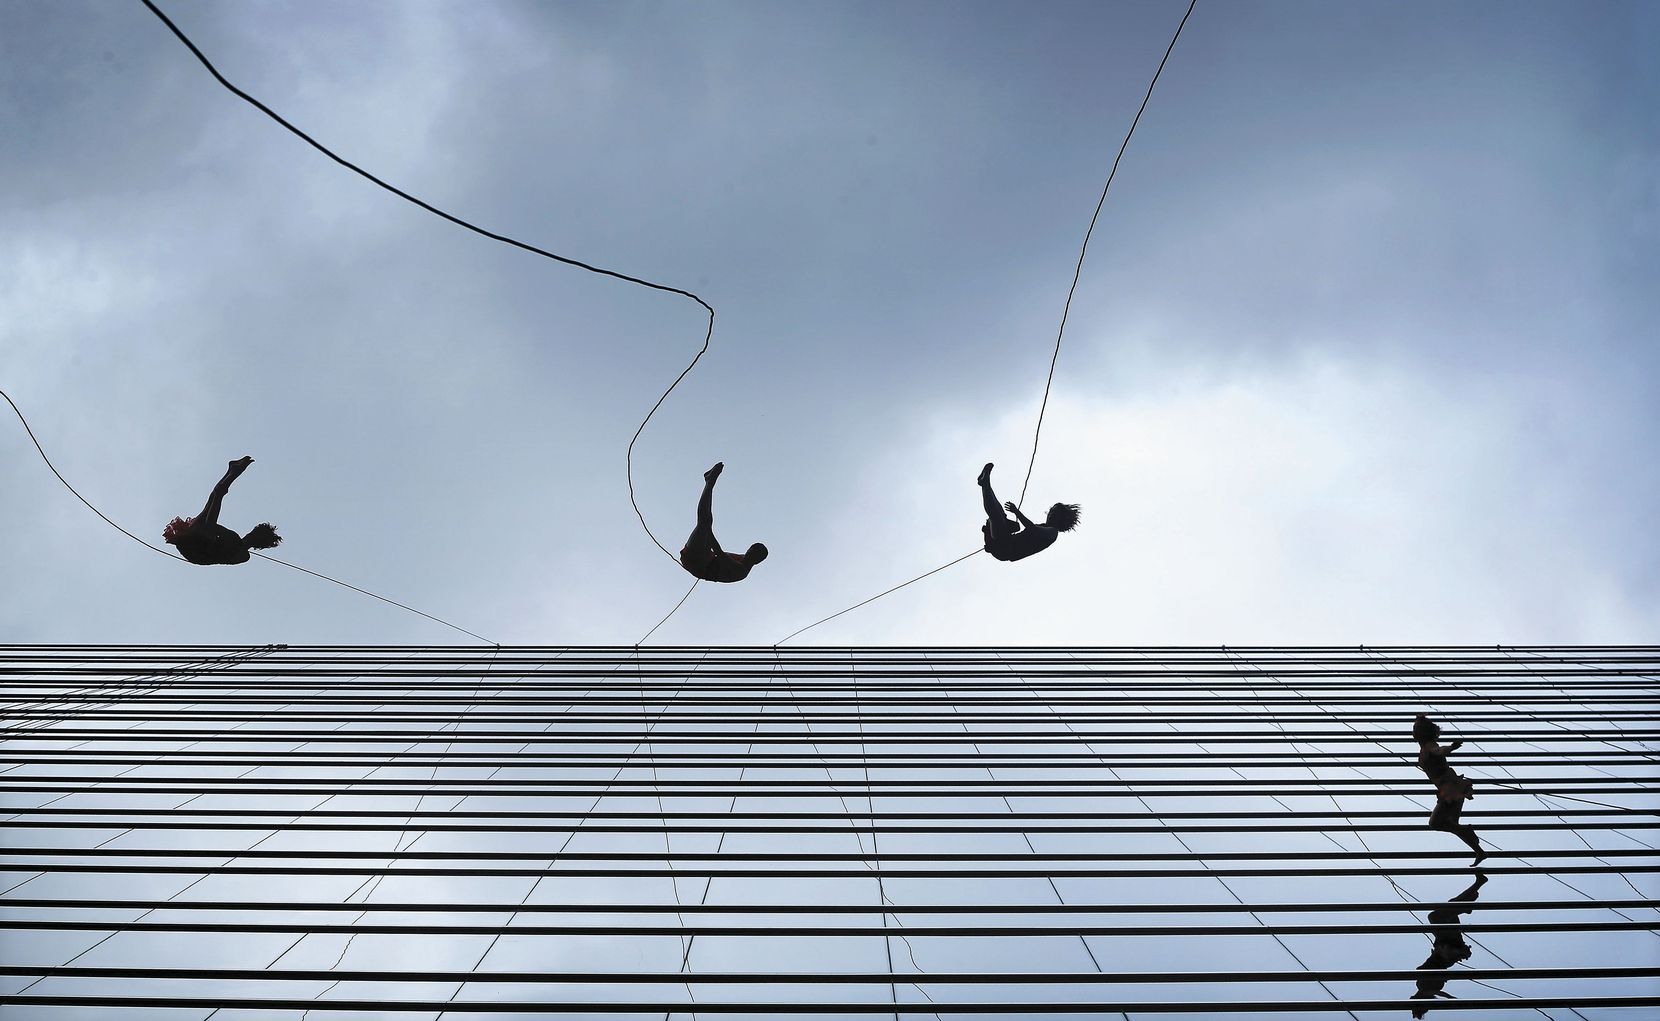 Members of the Bandaloop vertical dance company perform on the side of the KPMG Plaza office tower. The spectacle was part of a groundbreaking ceremony for Hall Arts Hotel and Residences, a 25-story downtown Dallas tower in the Arts District.